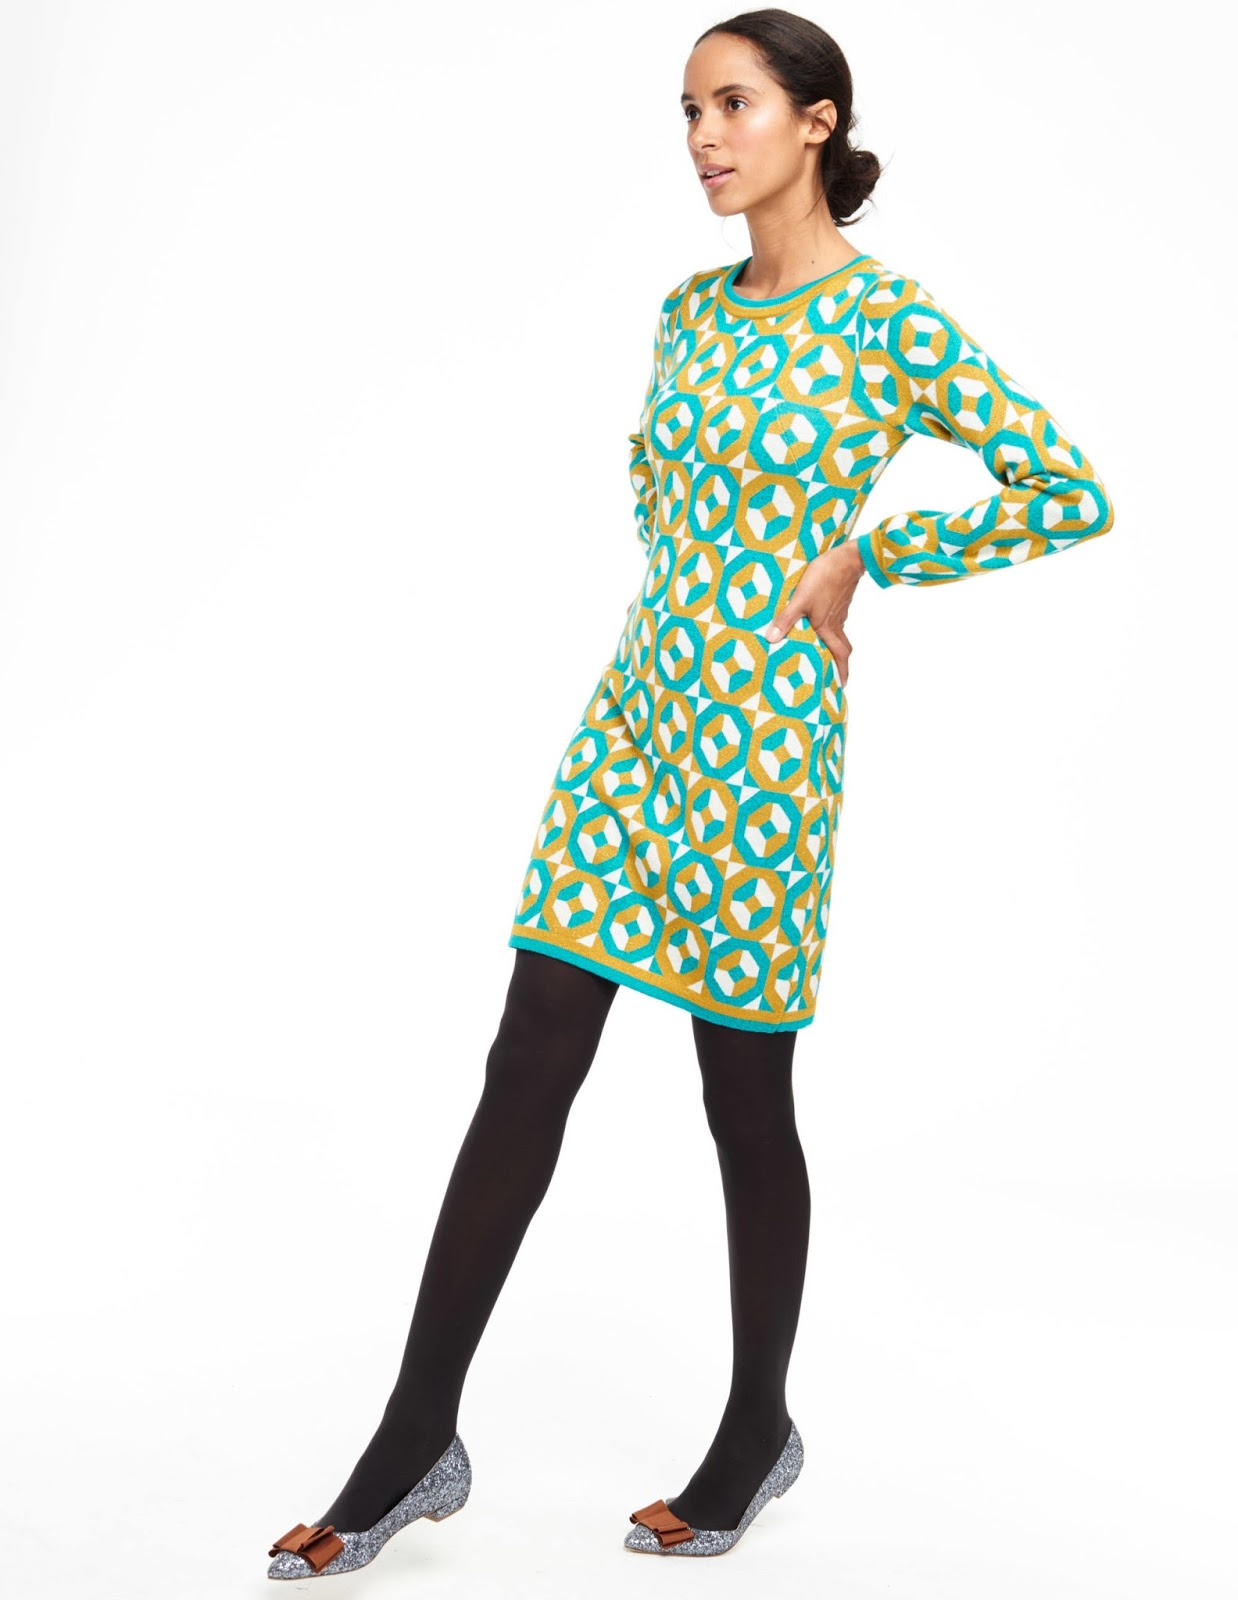 My superfluities boden winter preview 2015 is live for Boden winter preview 2015